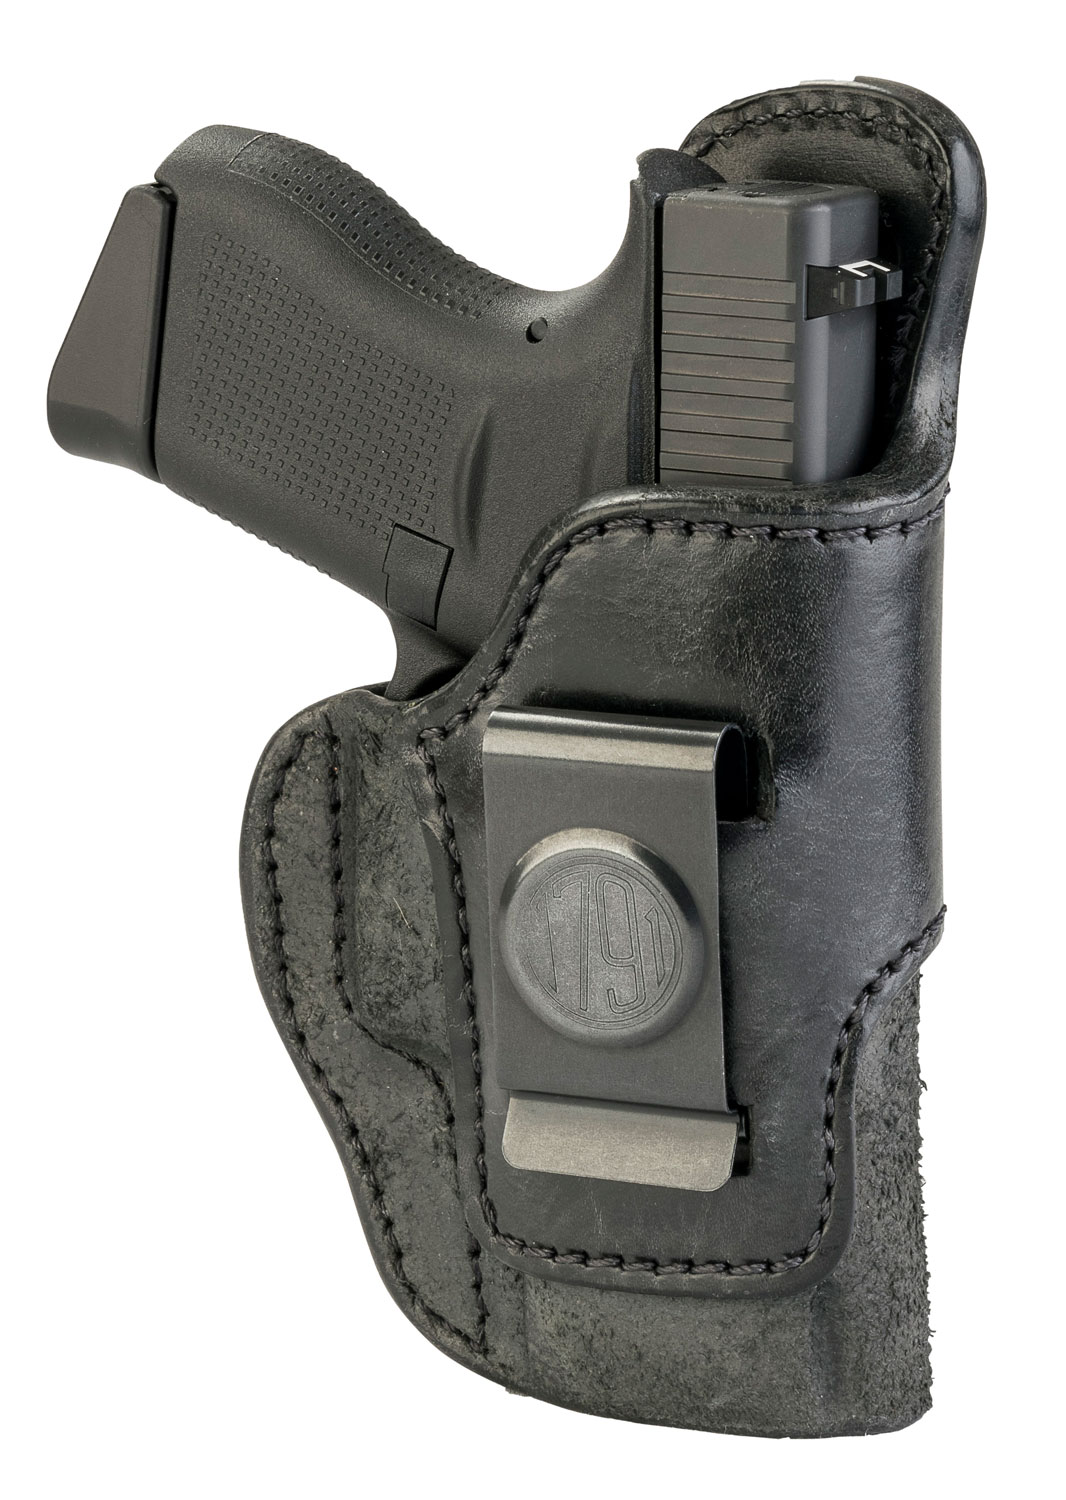 1791 RIGID CNCL HOLSTER SIZE 3 BL